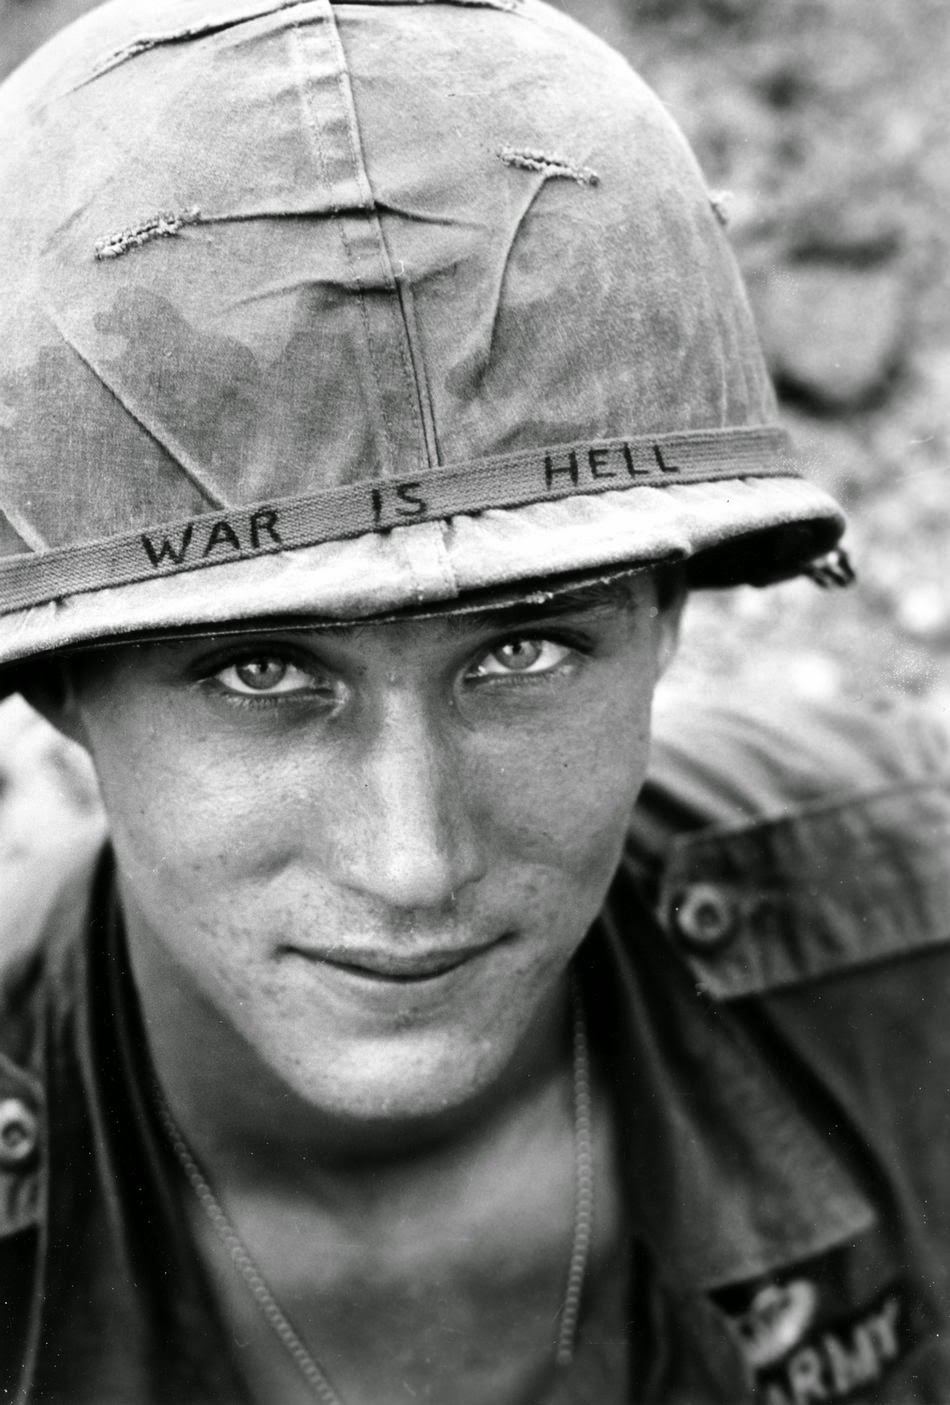 An American soldier wears a hand lettered War Is Hell slogan on his helmet, Vietnam, 1965